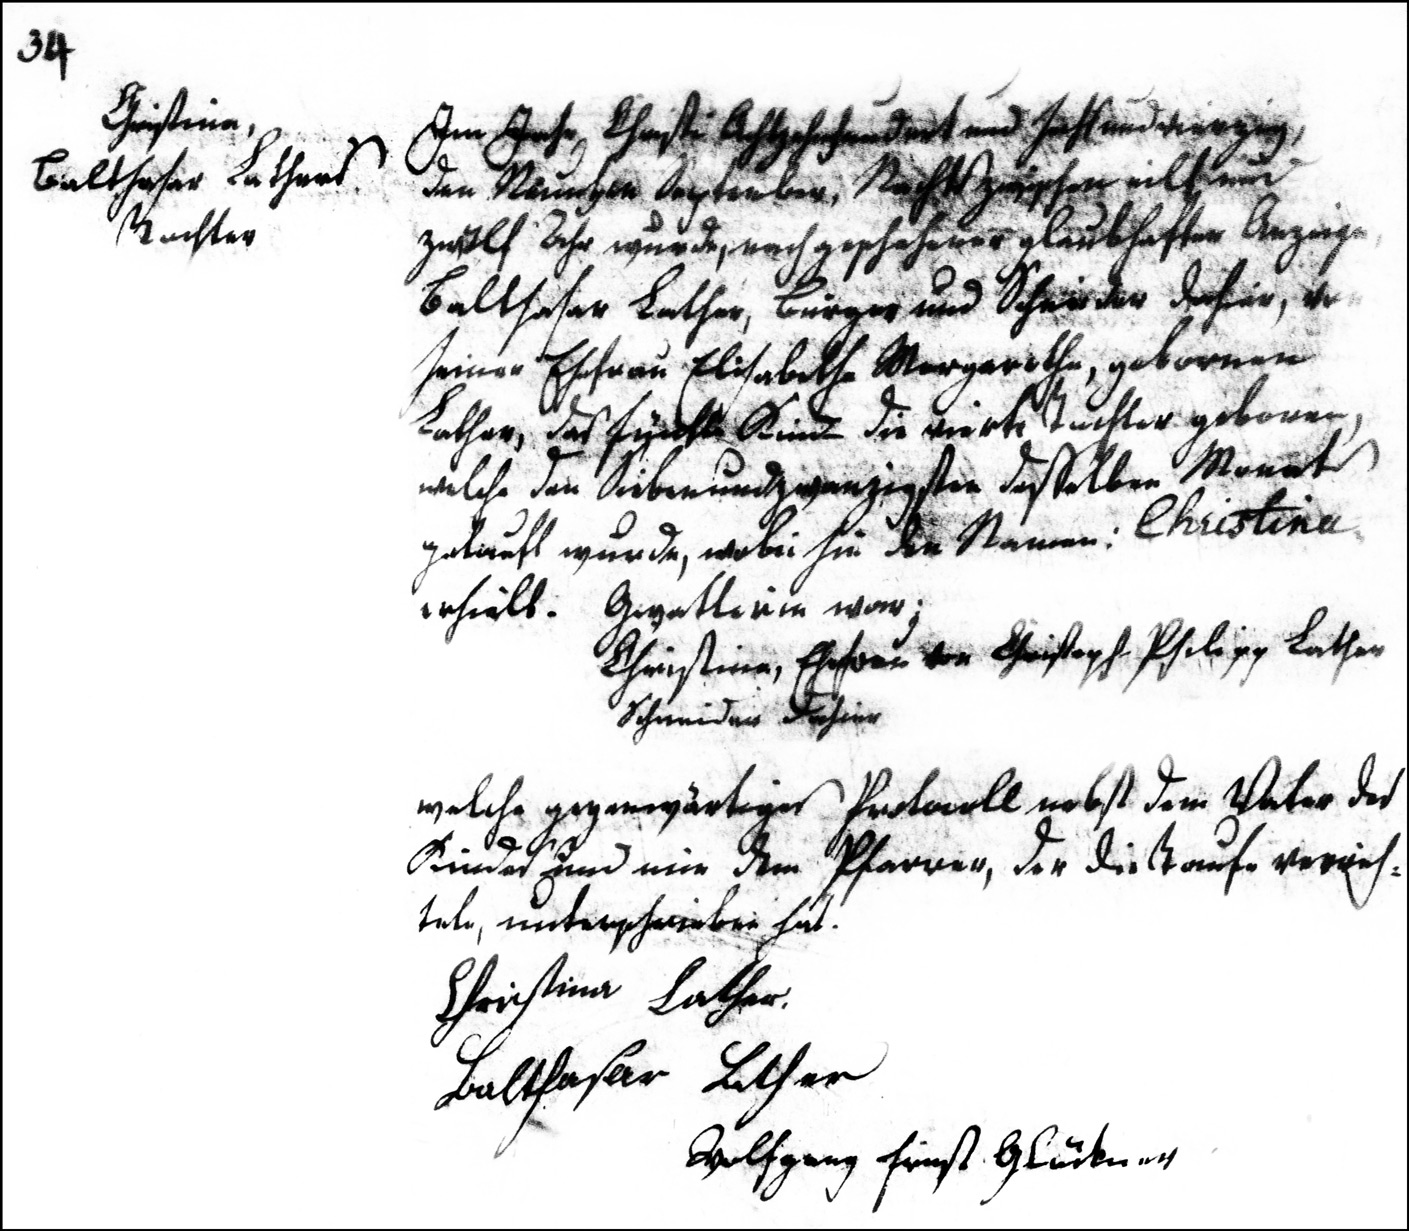 The Birth and Baptismal Record of Christina Lather - 1846